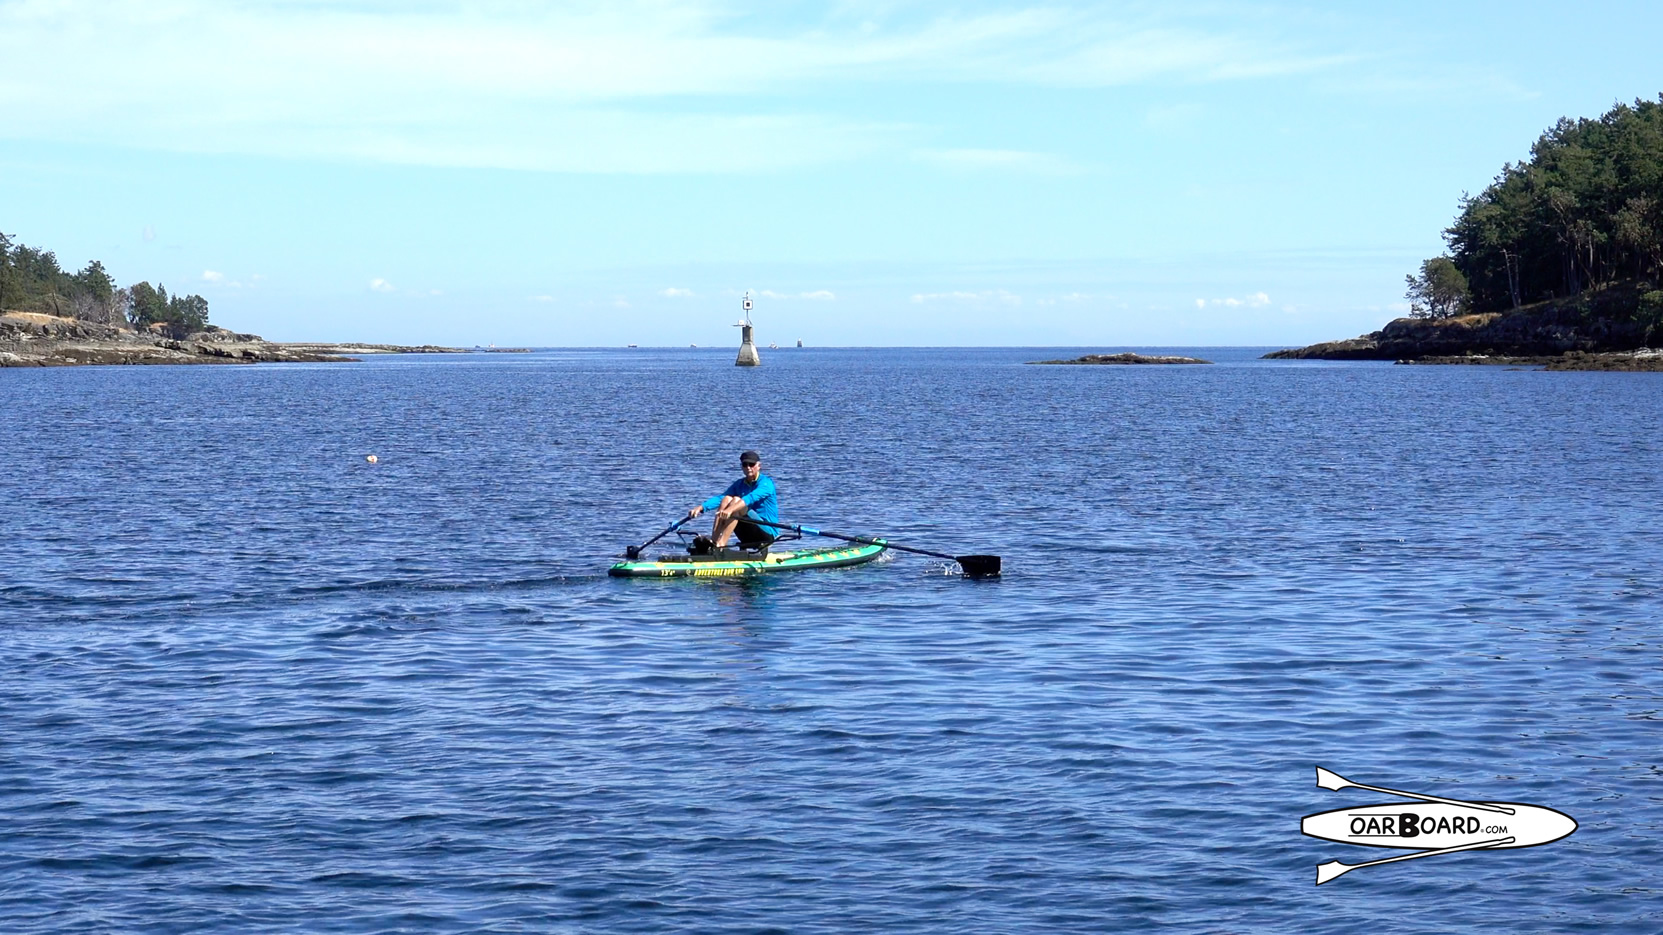 Silva-Bay-Harold-Aune-3-Oar-Board-Stand-Up-Paddle-Board-Rower-Whitehall-Rowing-and-Sail